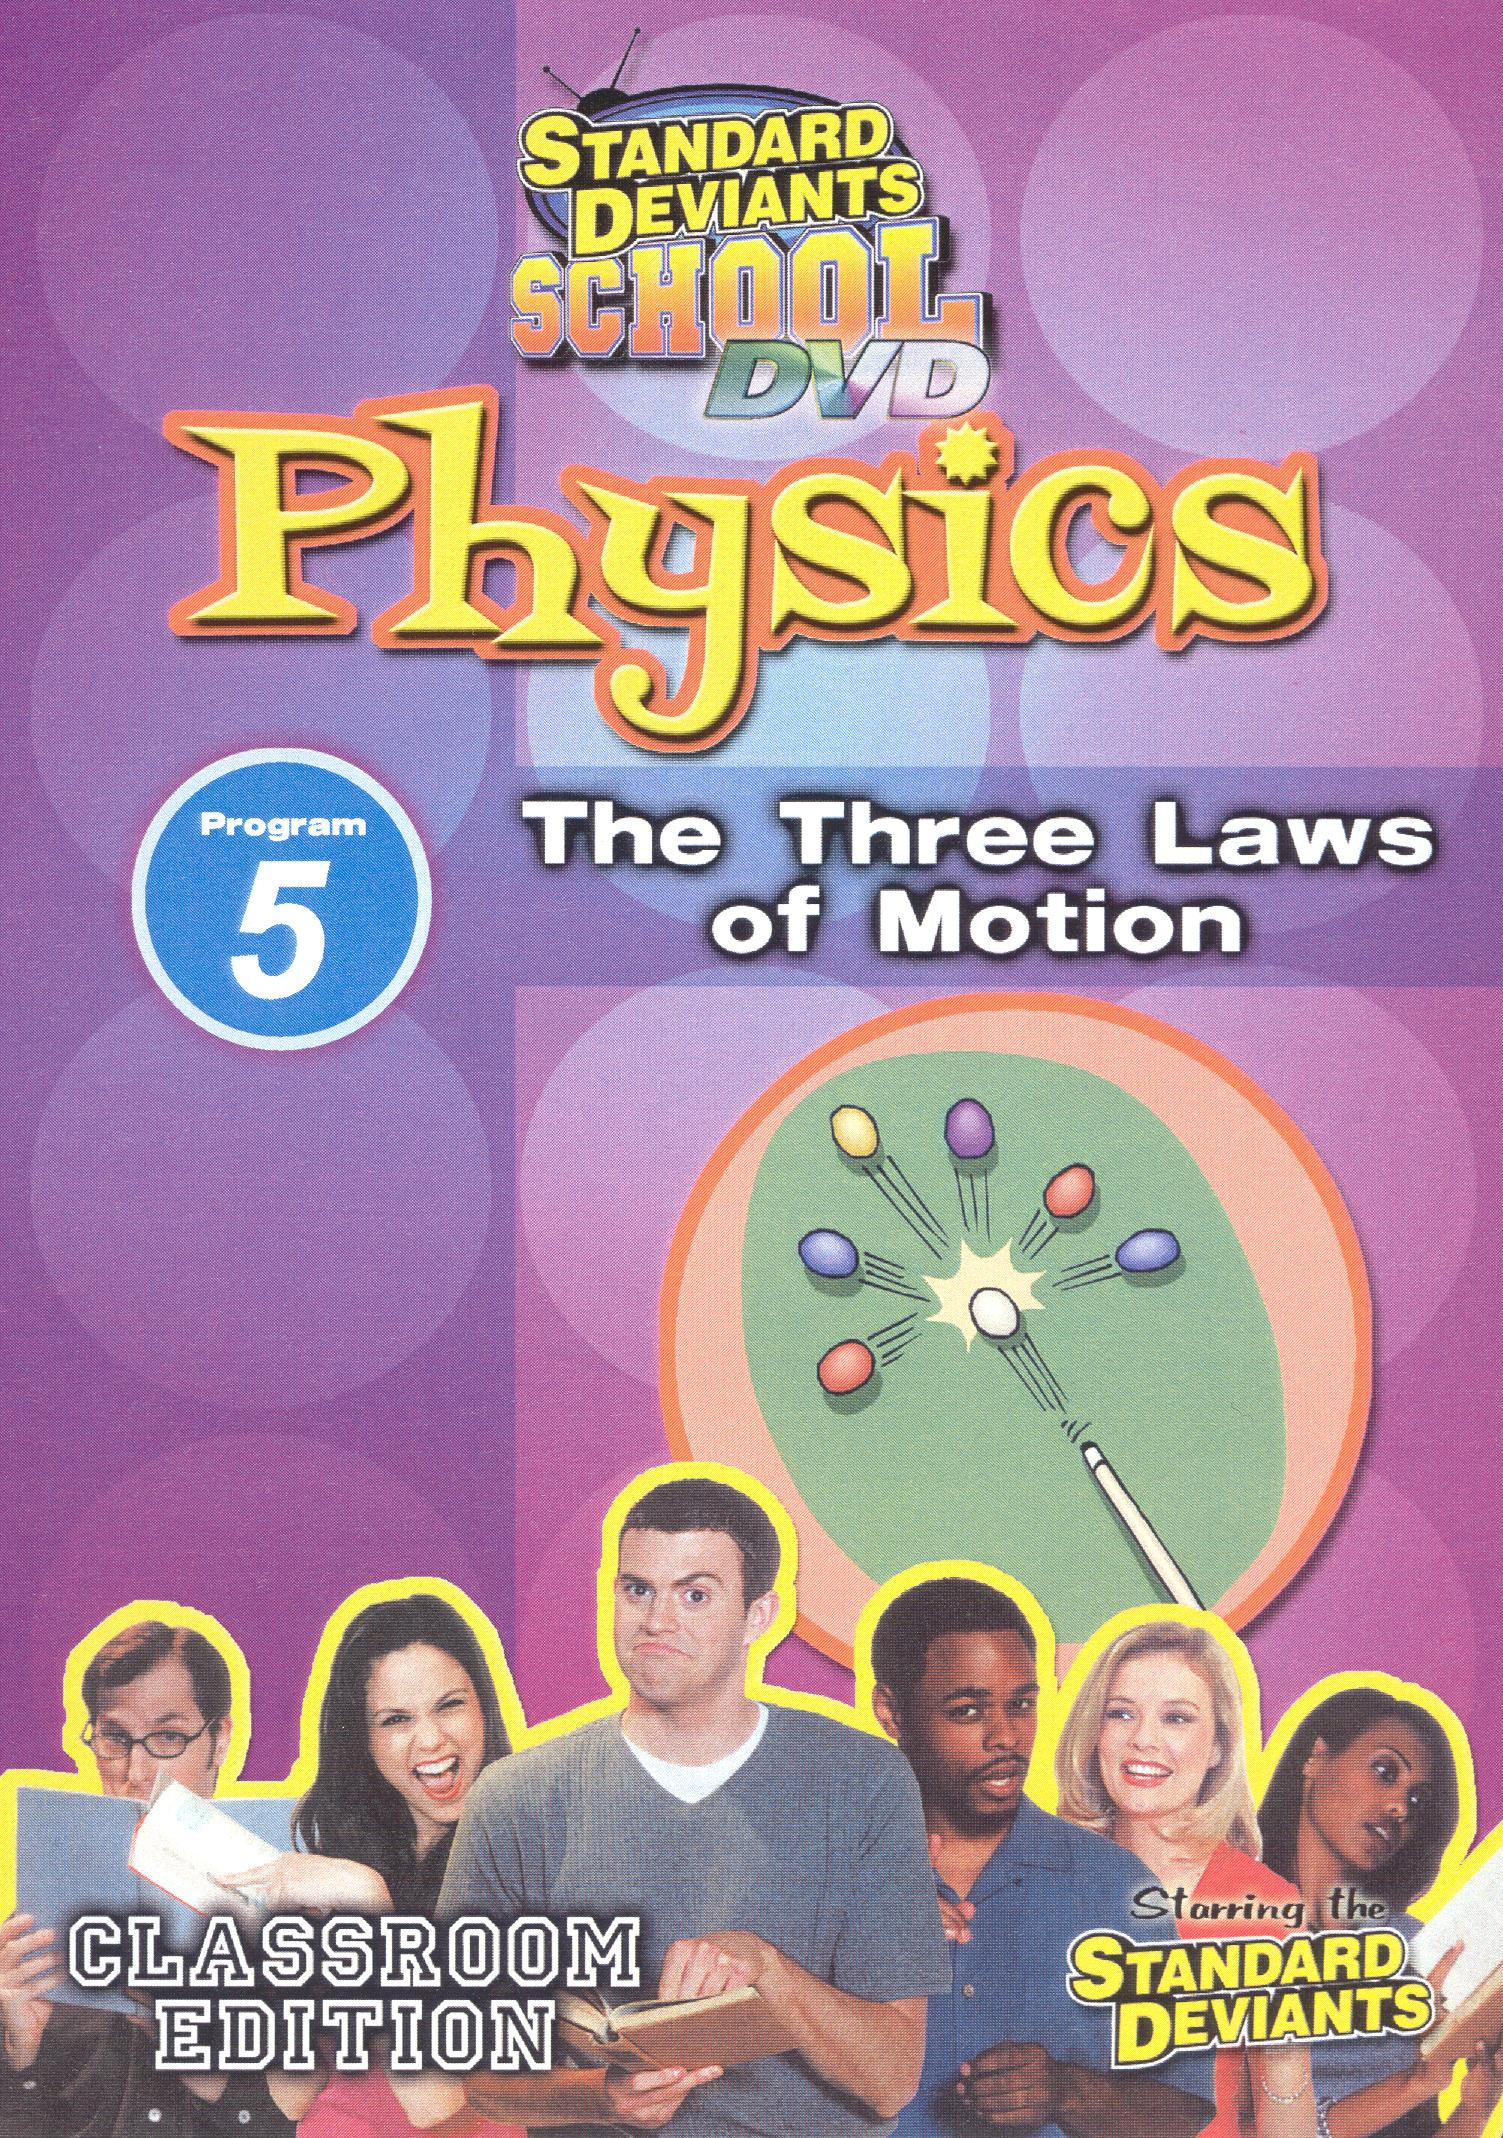 Standard Deviants School: Physics, Program 5 - The Three Laws of Motion